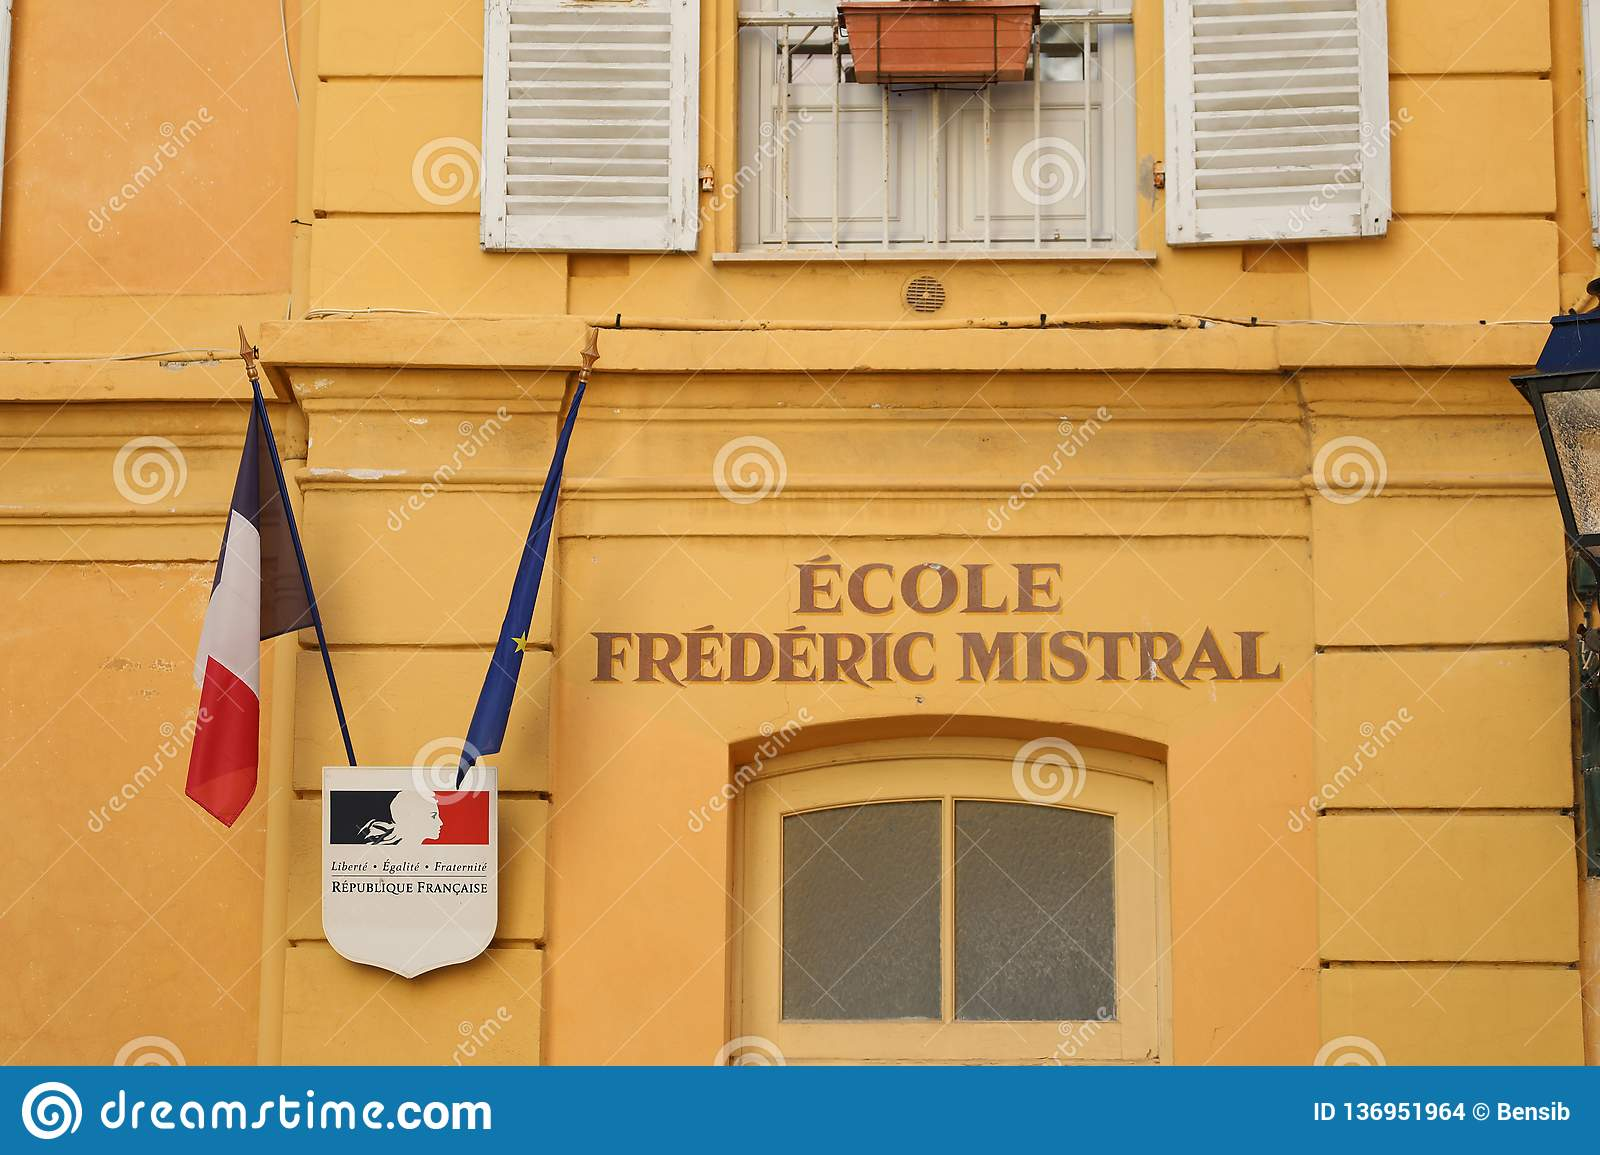 Facade Of An Elementary School In Menton France Editorial